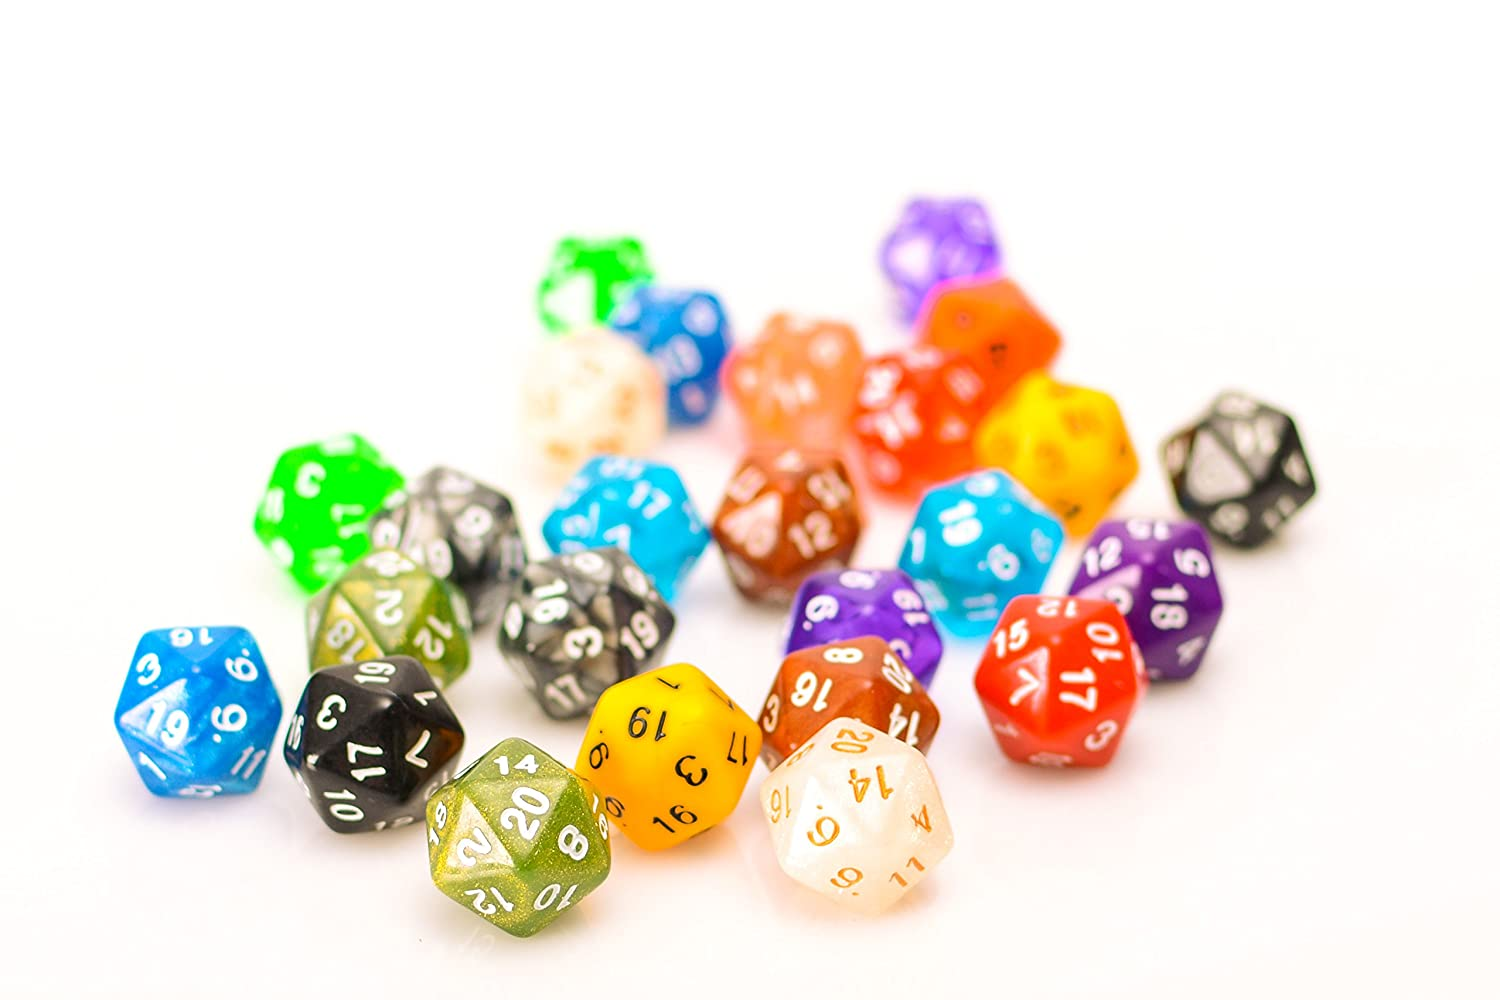 25 Count Assorted Pack of 20 Sided Dice - Multi Colored Assortment of D20 Polyhedral Dice Easy Roller Dice Co.